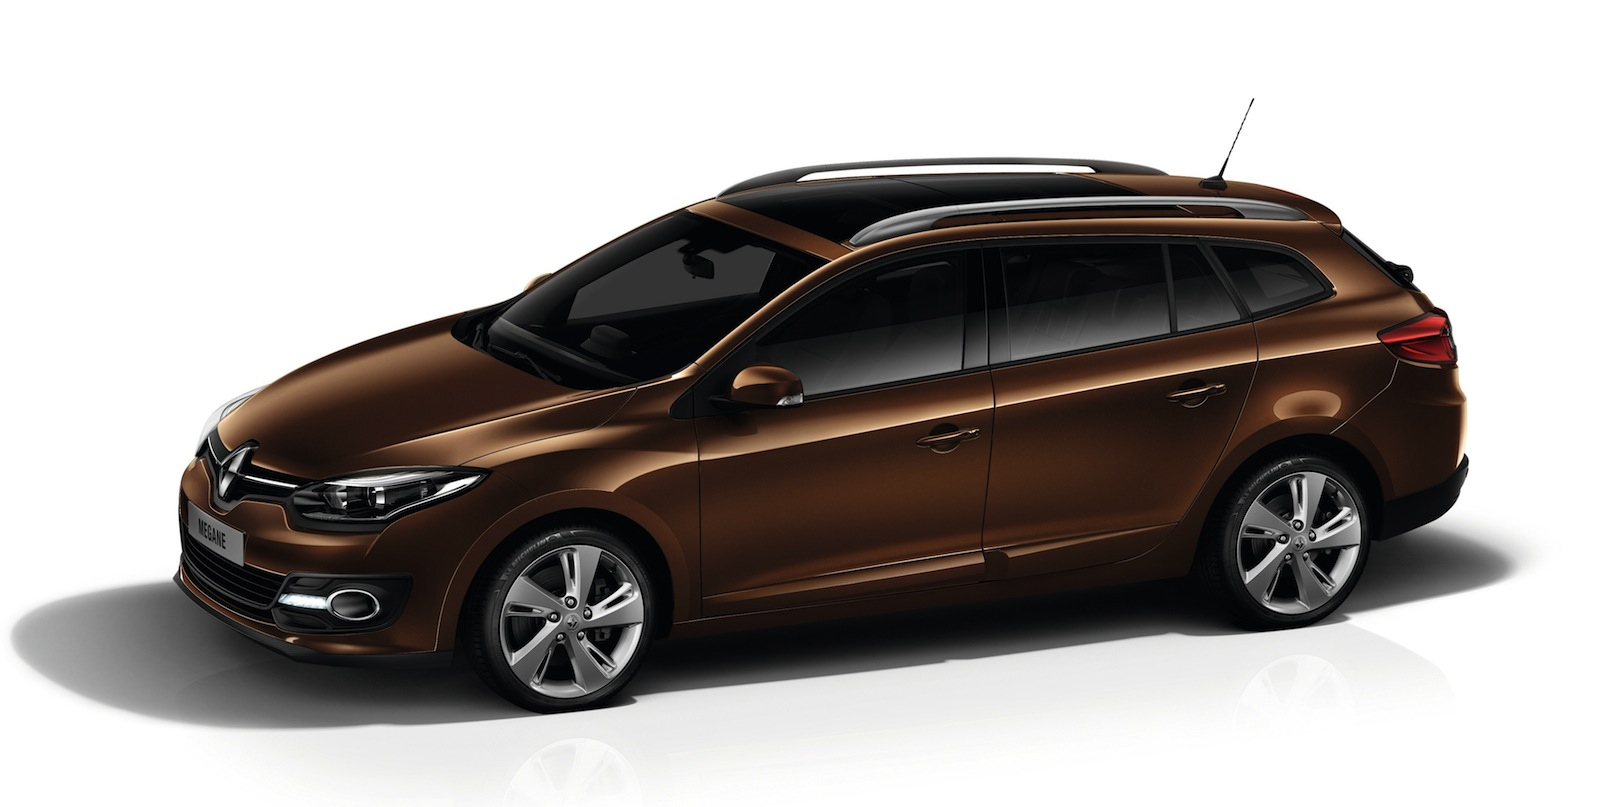 Renault Megane III Facelift 2 Wagon 5 door